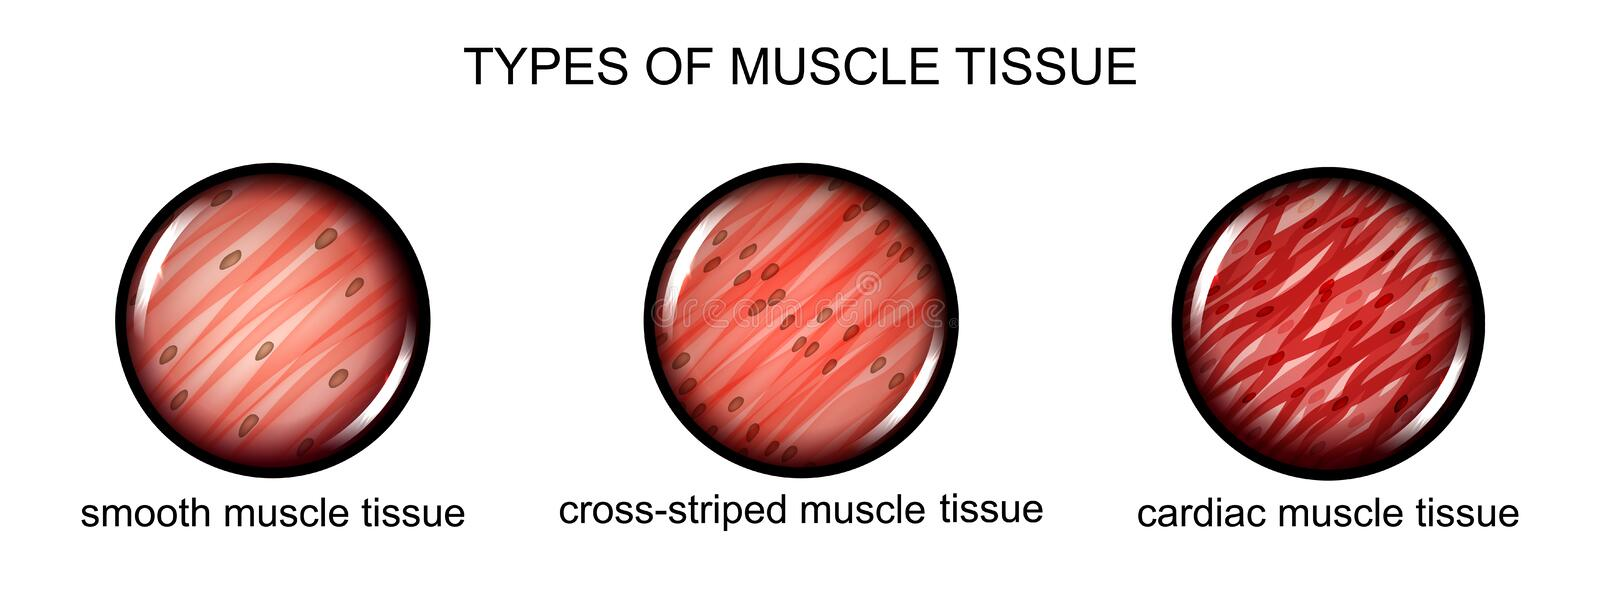 Types of muscle tissue vector illustration